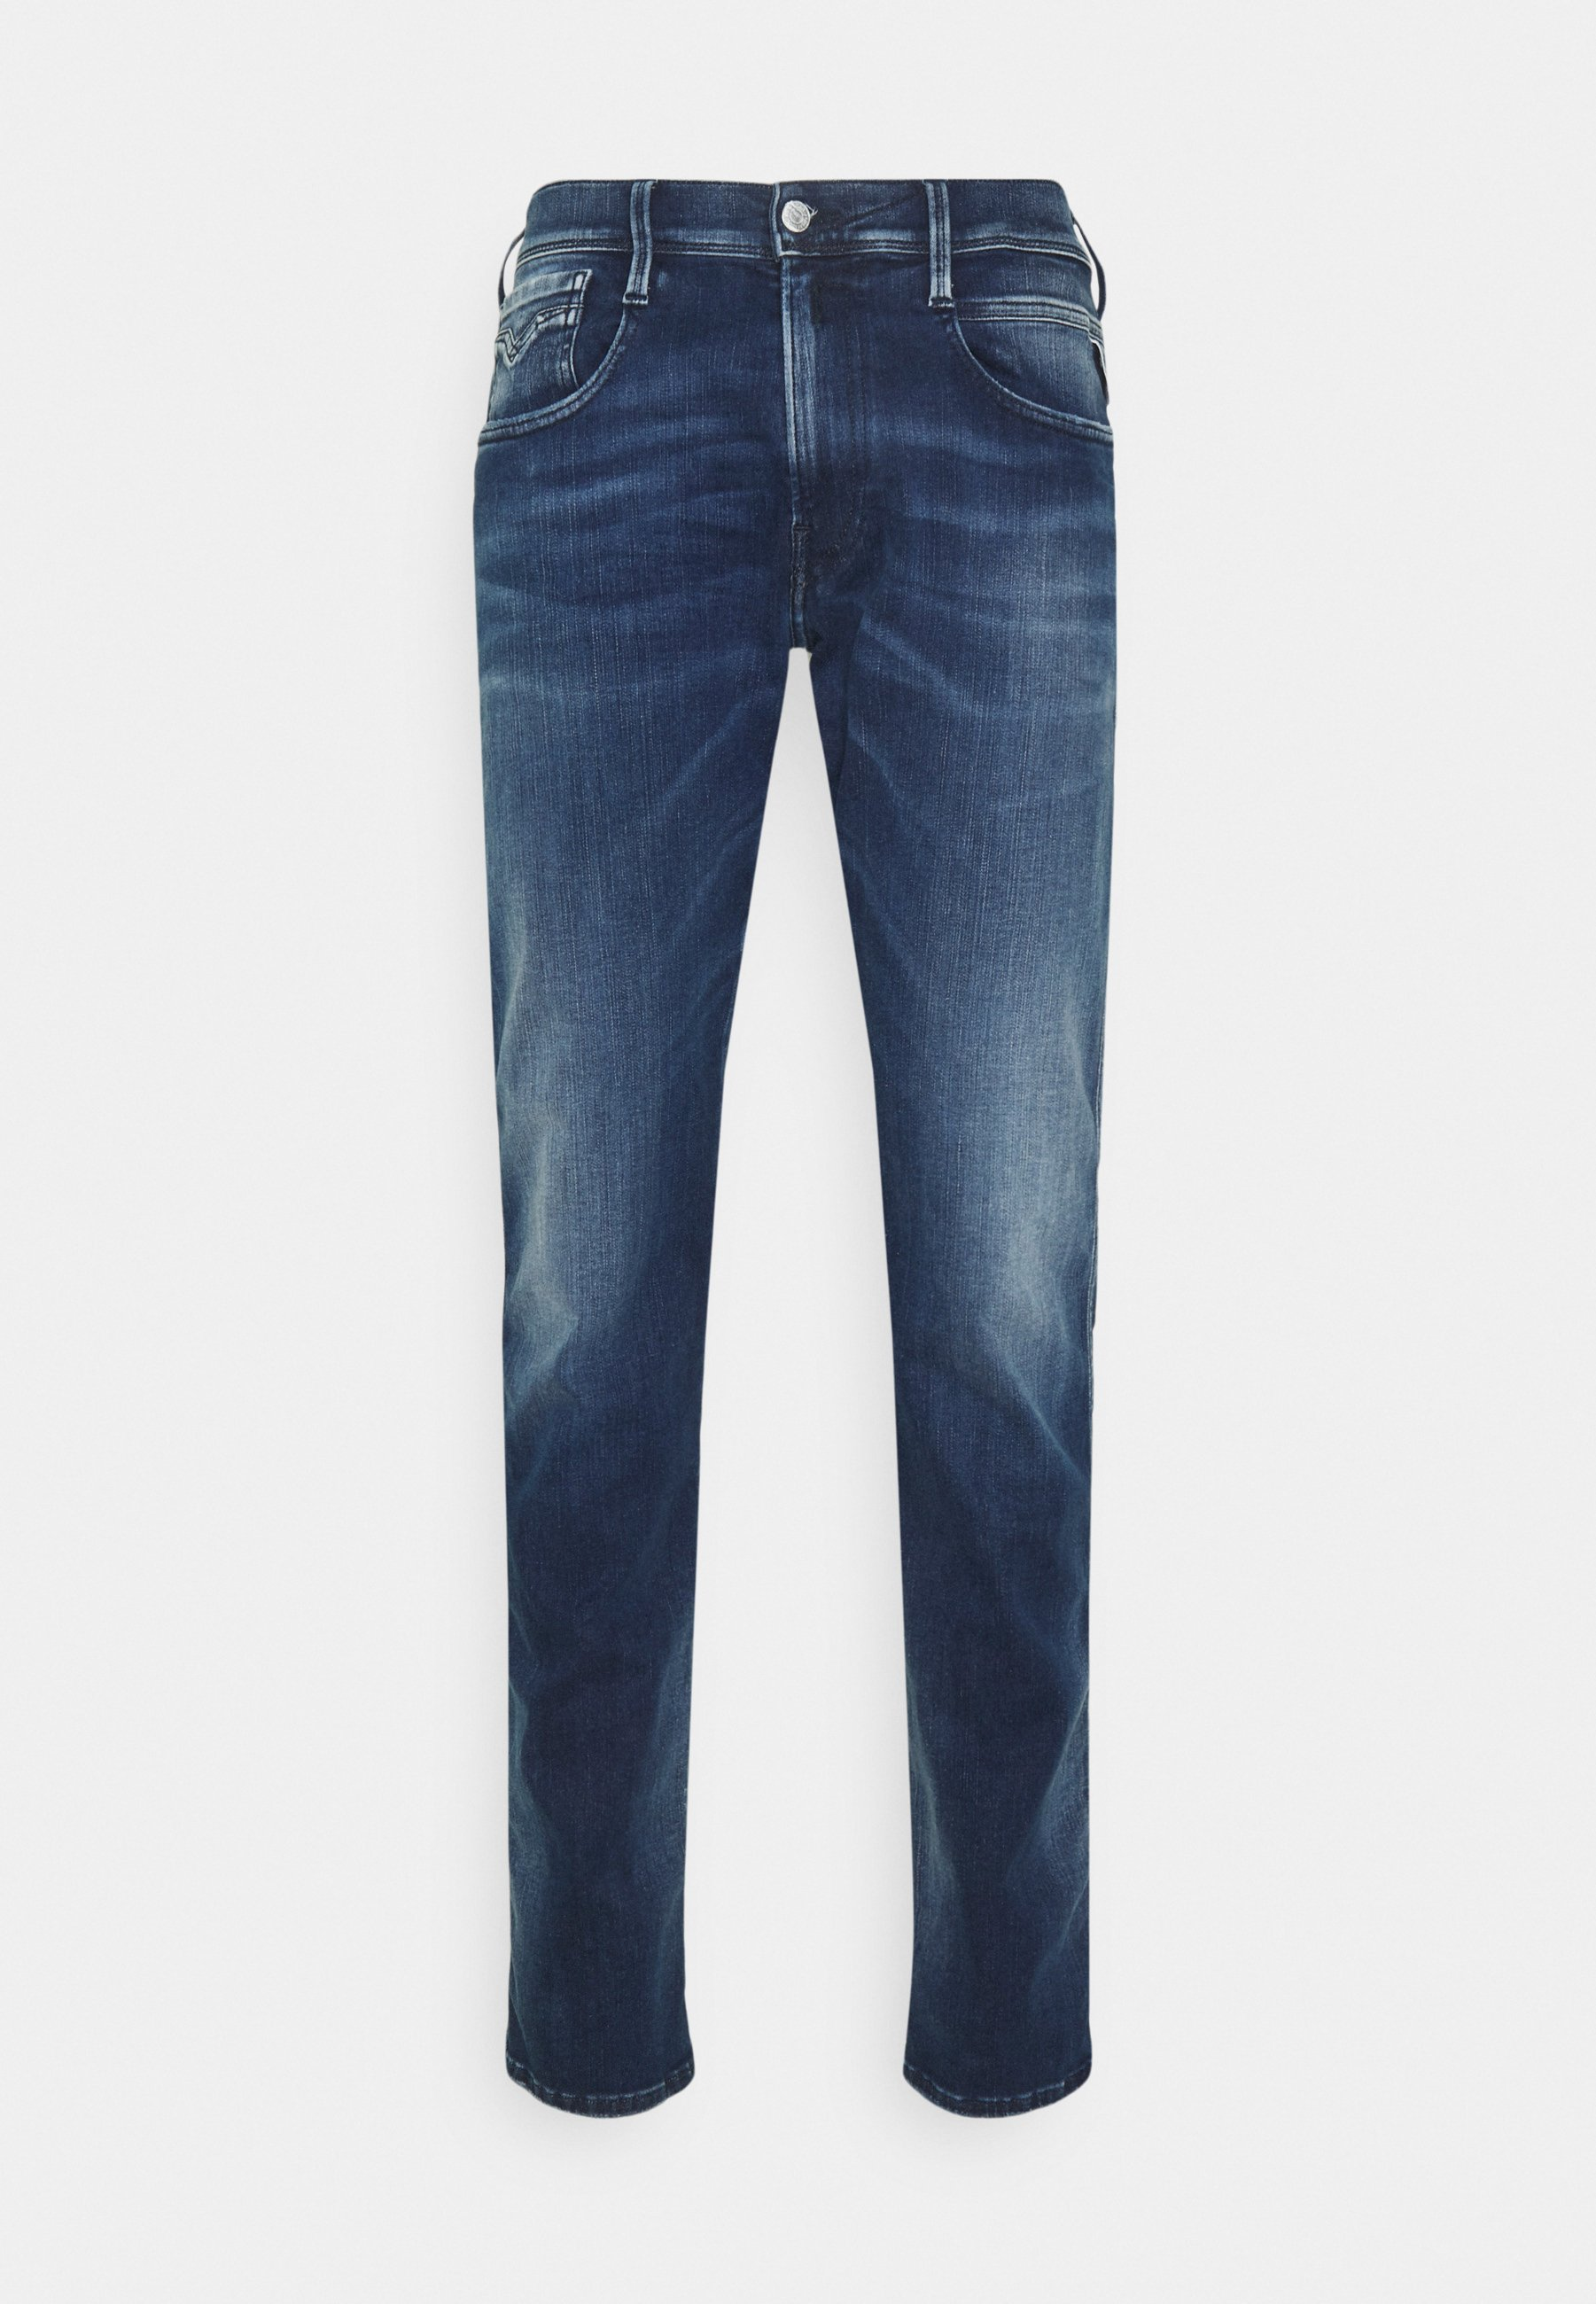 Uomo ANBASS SHADES - Jeans slim fit